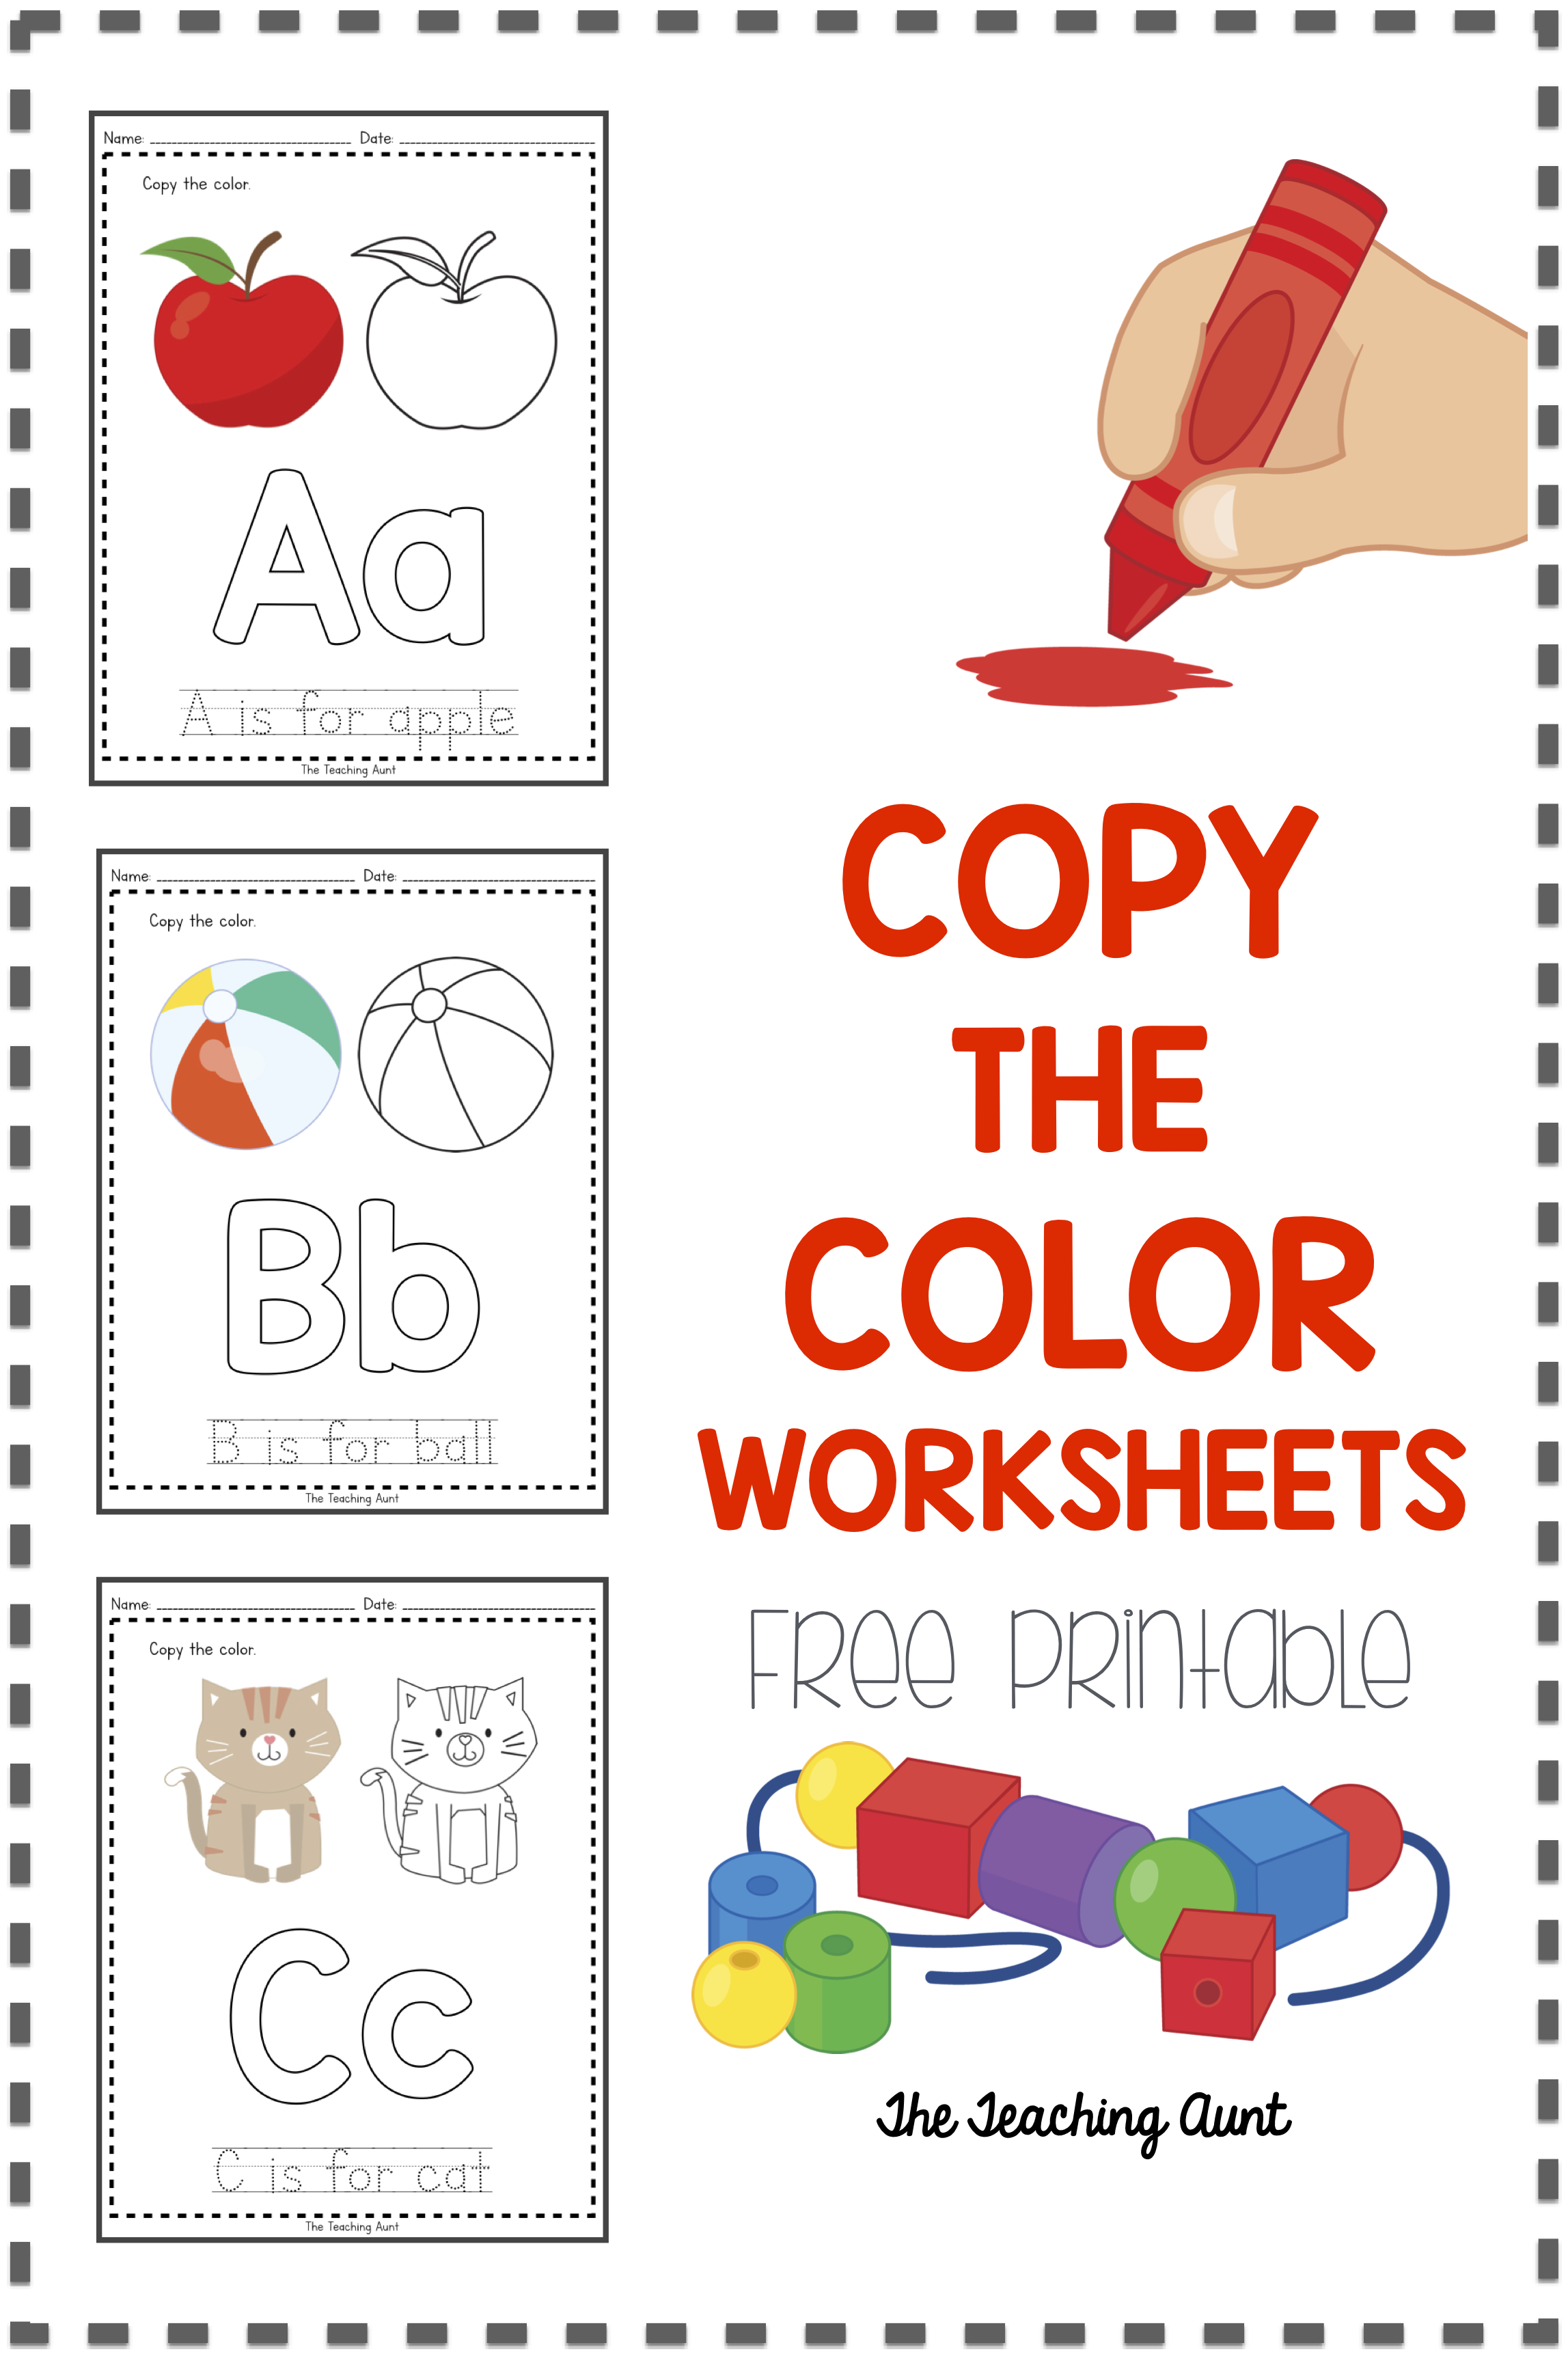 A To Z Paper Pasting Activity Collection The Teaching Aunt Free Preschool Worksheets Math Center Activities Letter Worksheets For Preschool [ 3445 x 2295 Pixel ]